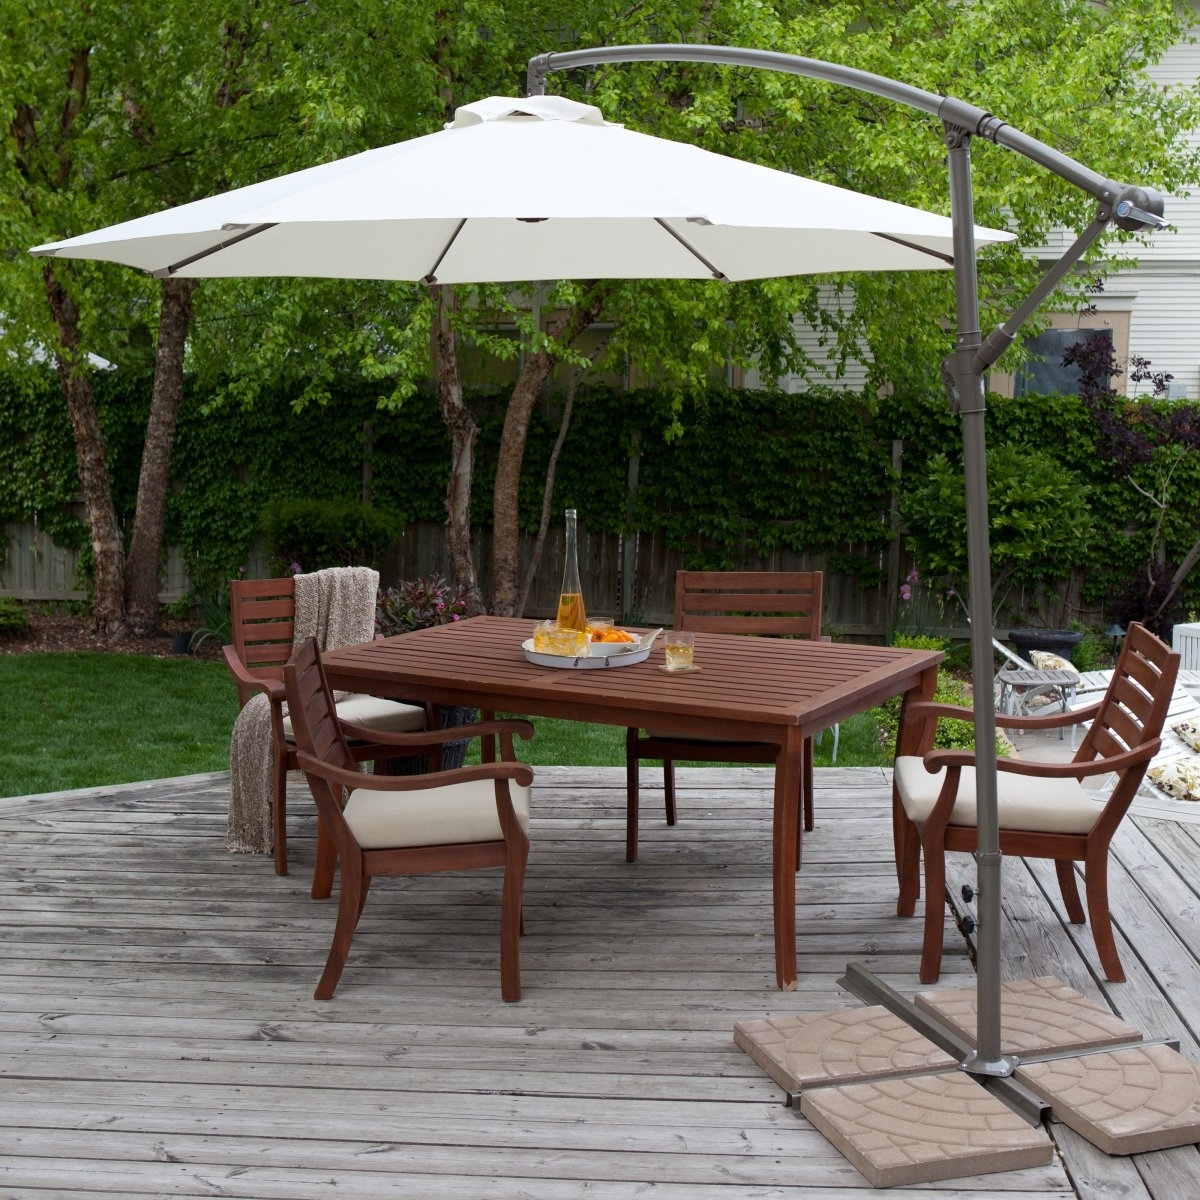 The Patio Table Umbrella For Comfort Gathering — Mistikcamping Home With Well Liked Sunbrella Patio Table Umbrellas (View 17 of 20)